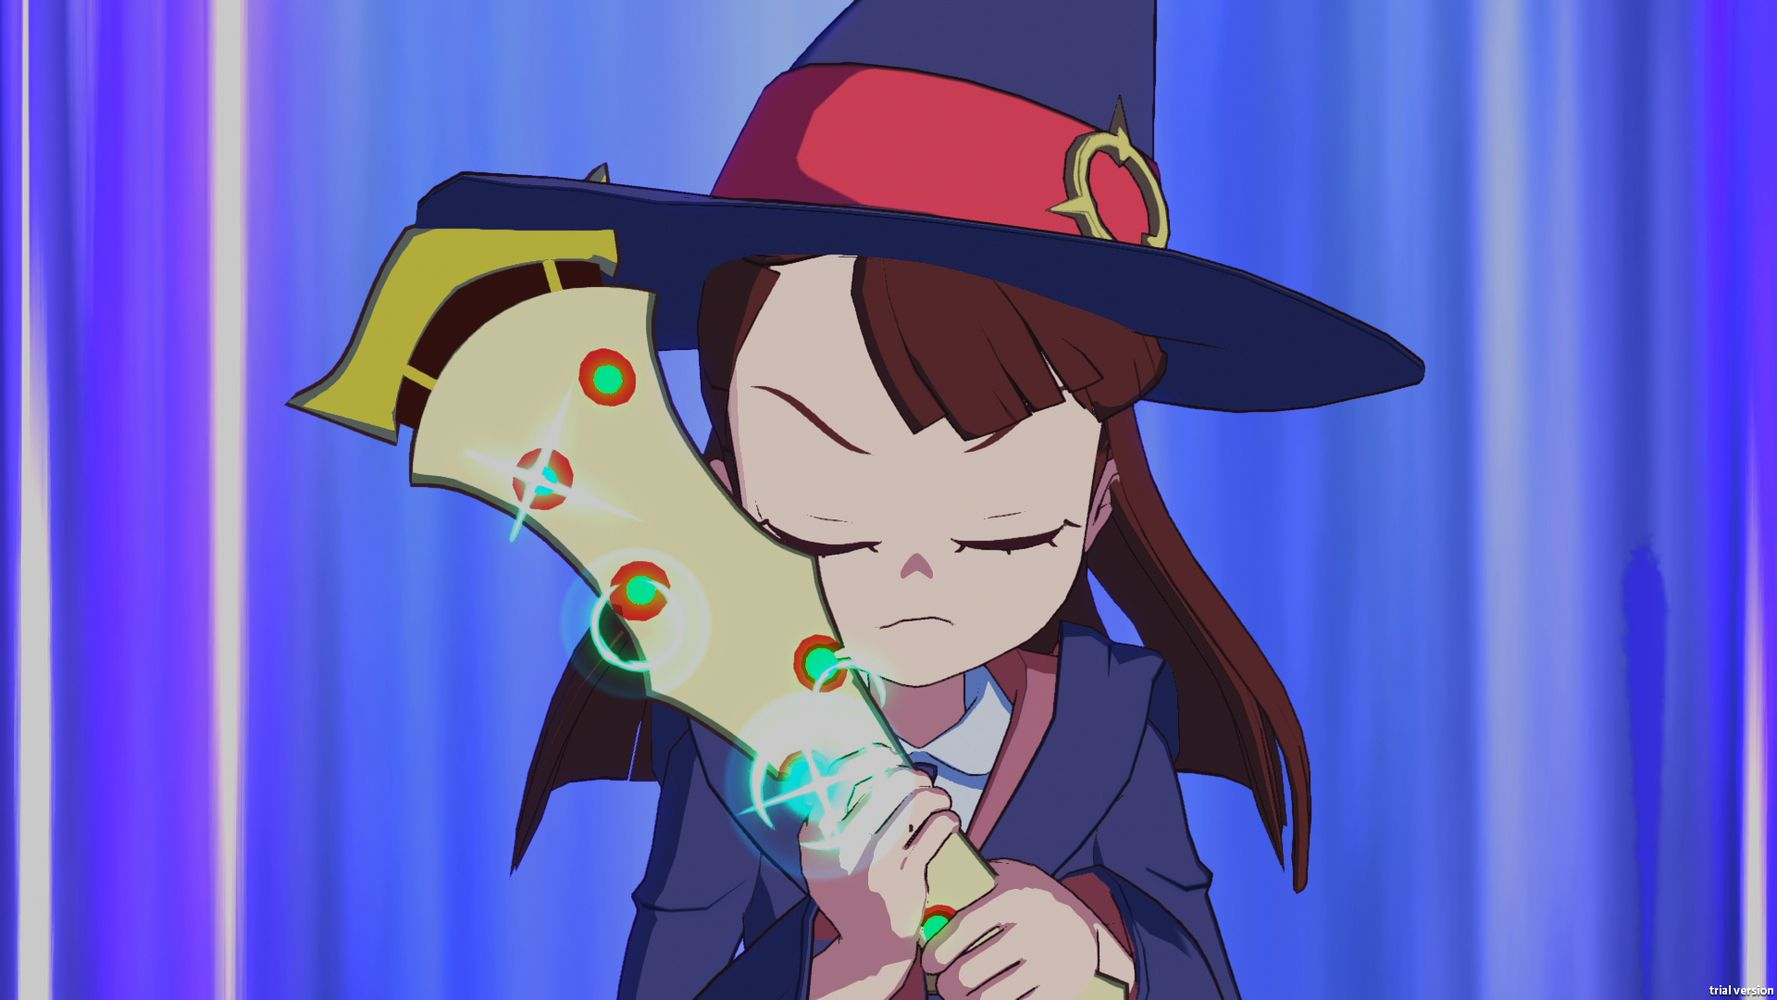 Bandai Namco annuncia LITTLE WITCH ACADEMIA: CHAMBER OF TIME